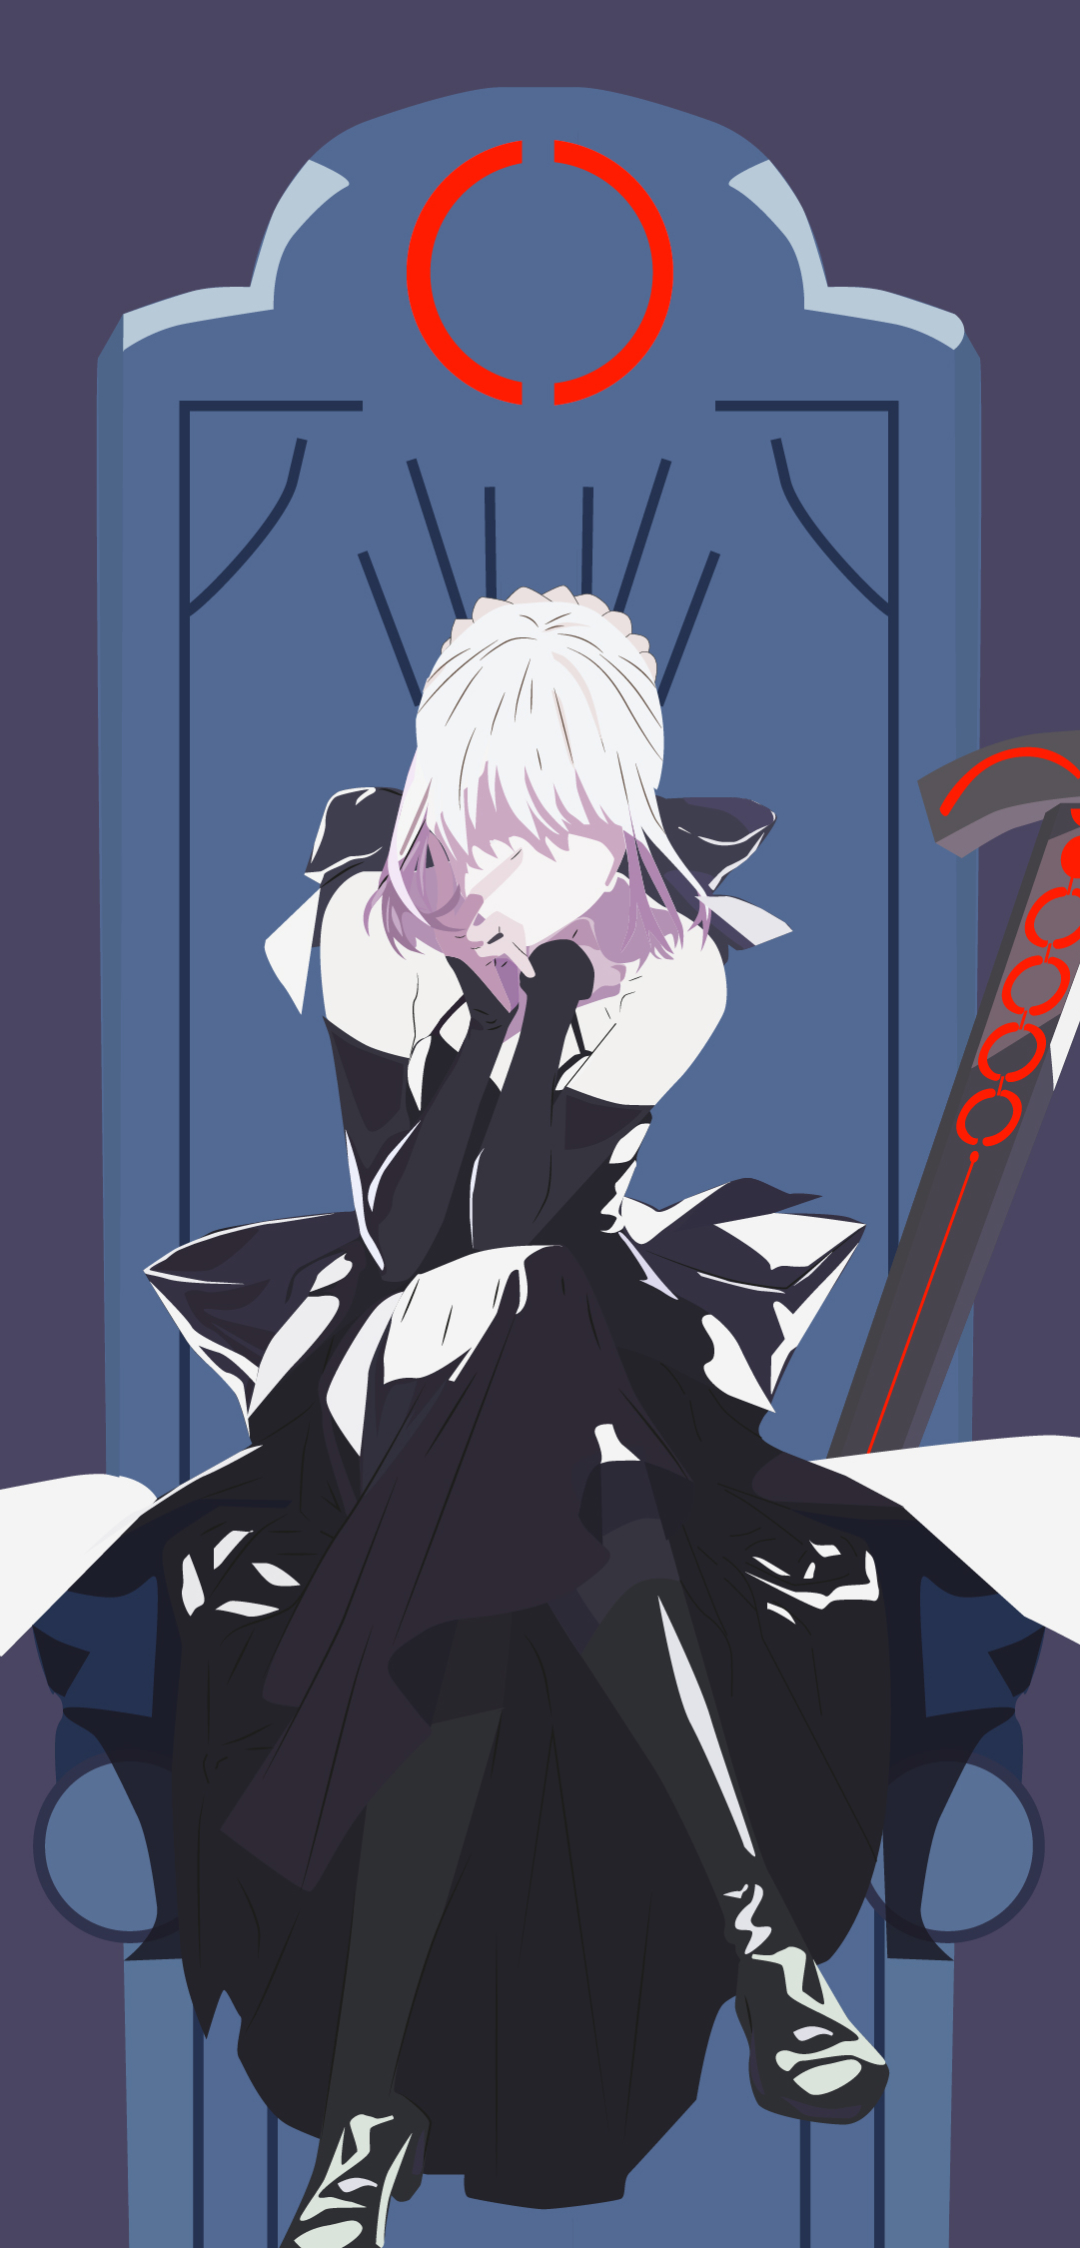 Anime Fate Grand Order 1080x2248 Wallpaper Id 776831 Mobile Abyss